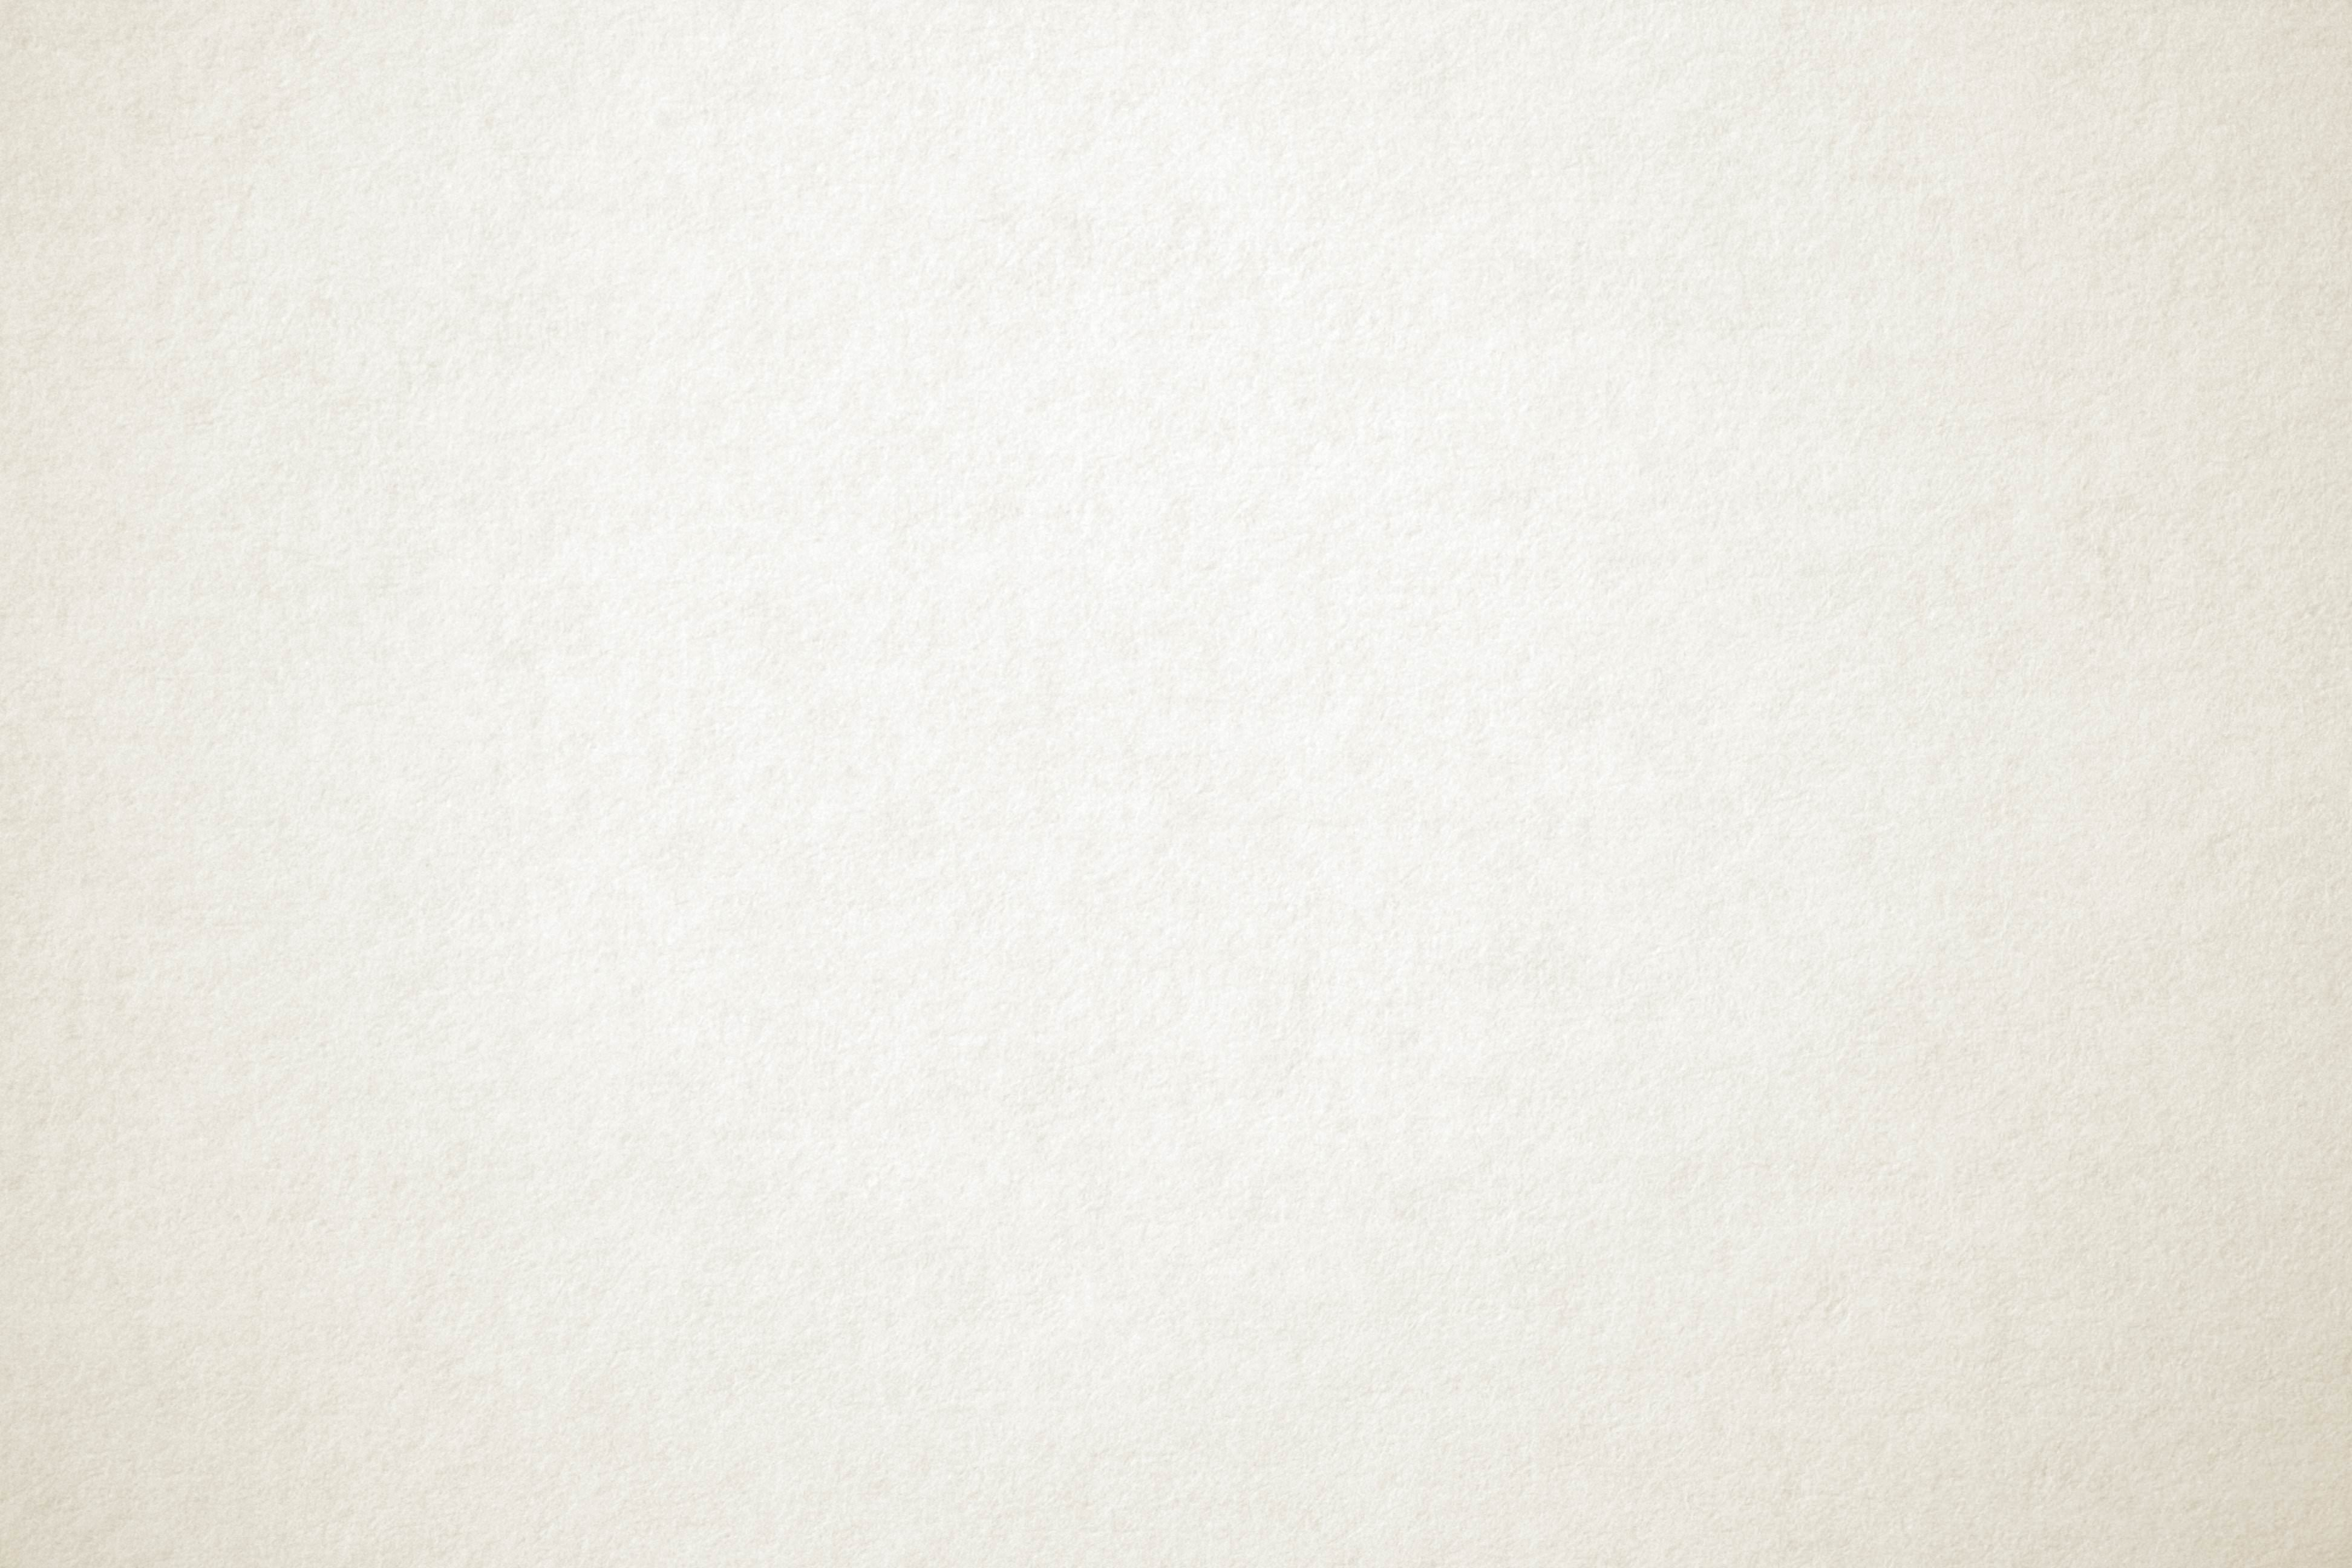 35+ White Paper Textures | HQ Paper Textures | FreeCreatives